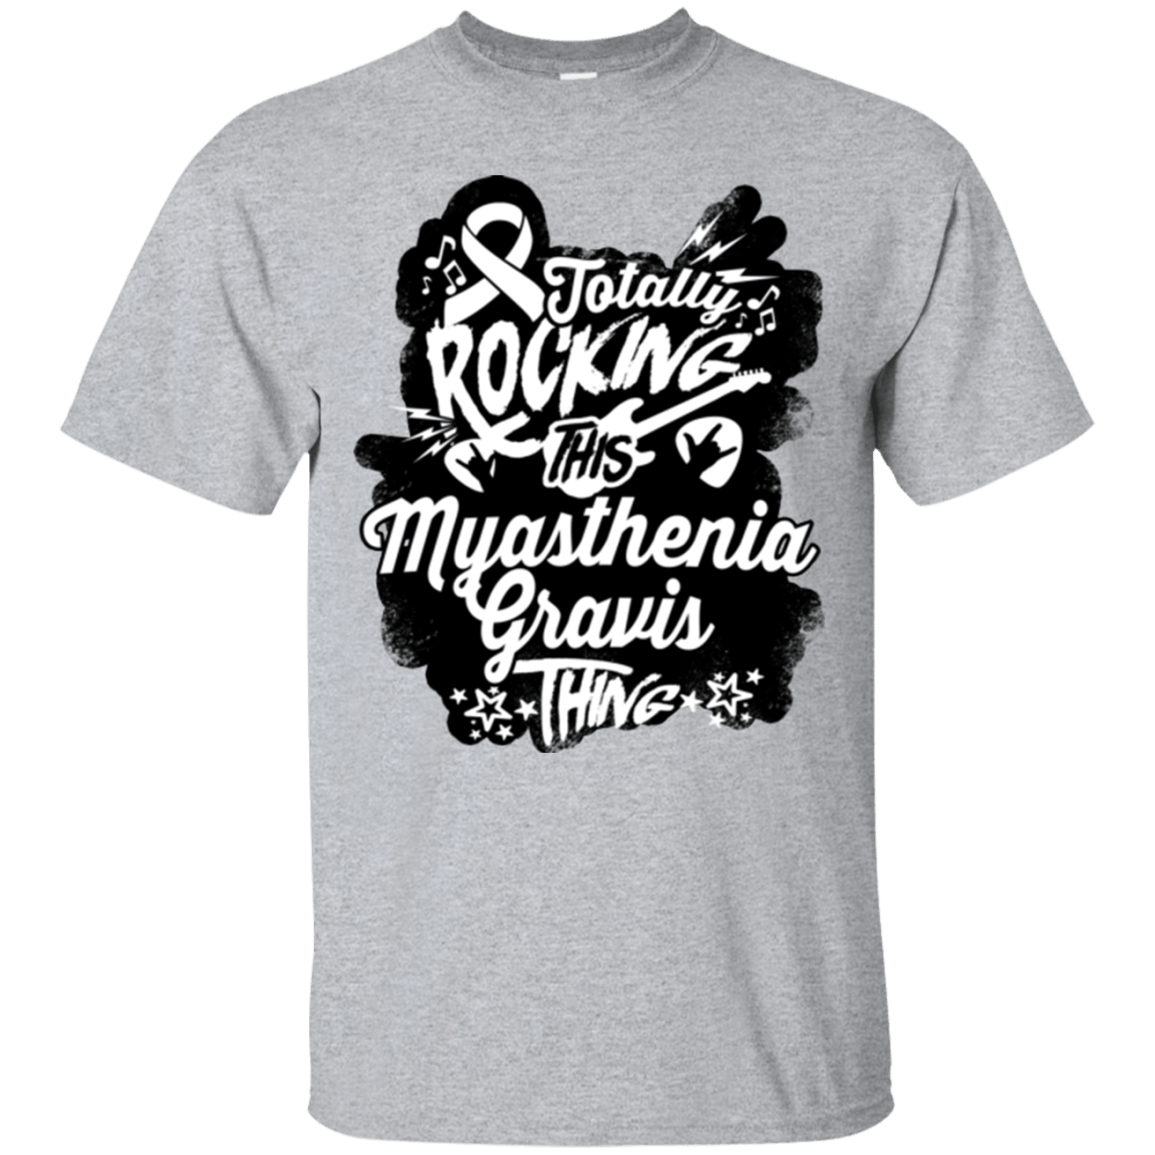 Rocking Myasthenia Gravis Unisex Shirt - The Unchargeables